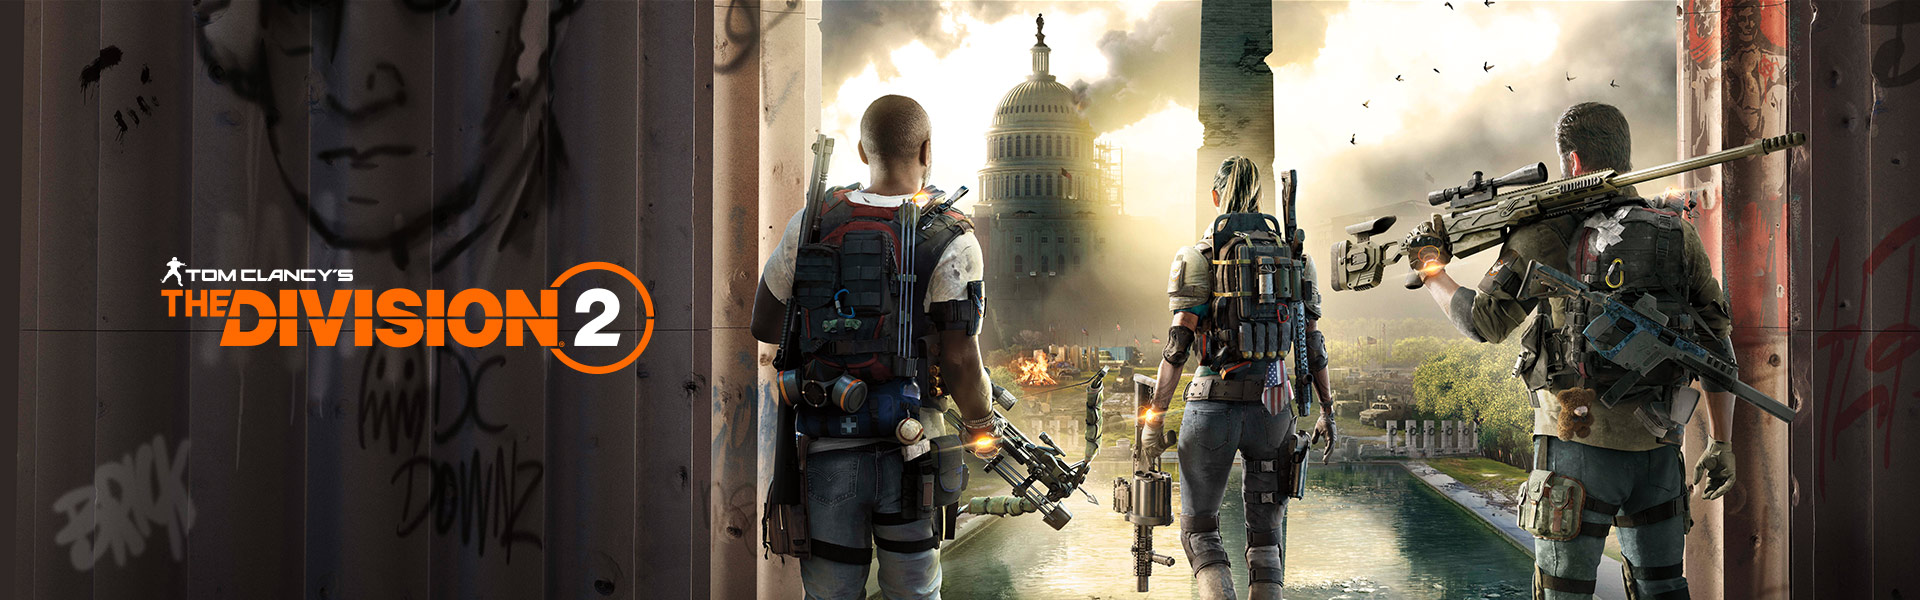 Tom Clancy's The Division 2, Tre tungt utrustede personer ser ut over en herjet Washington D.C.